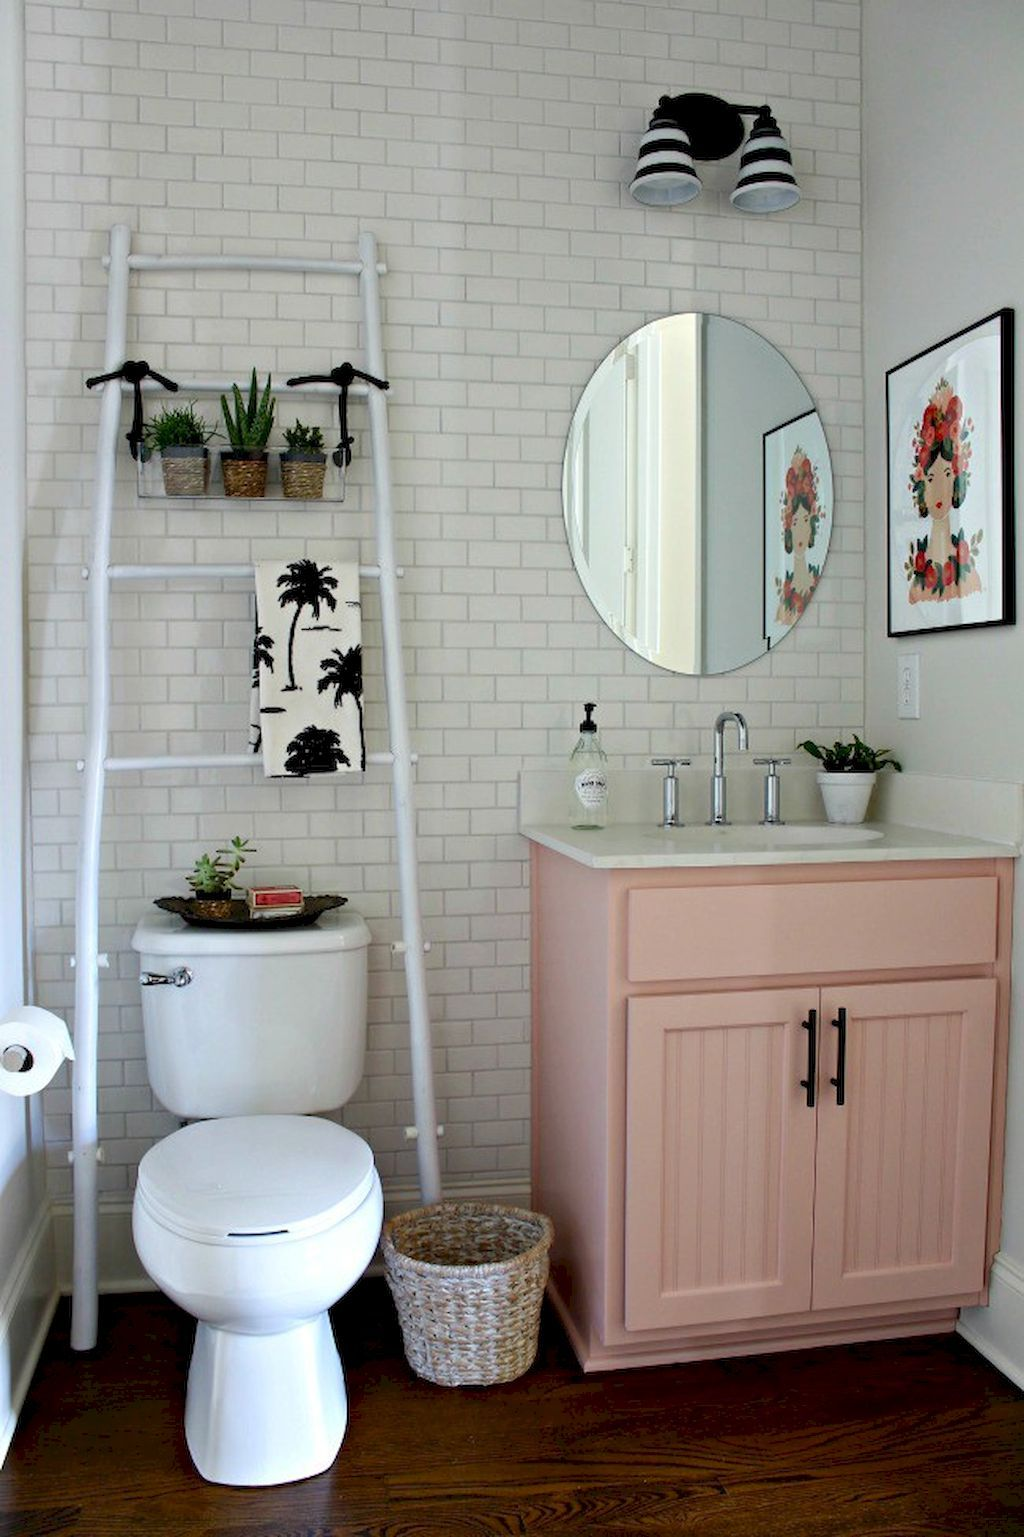 65 Smart And Creative Small Apartment Decorating Ideas On A Budget Mesmerizing Bathroom Decor Ideas On A Budget Decorating Inspiration